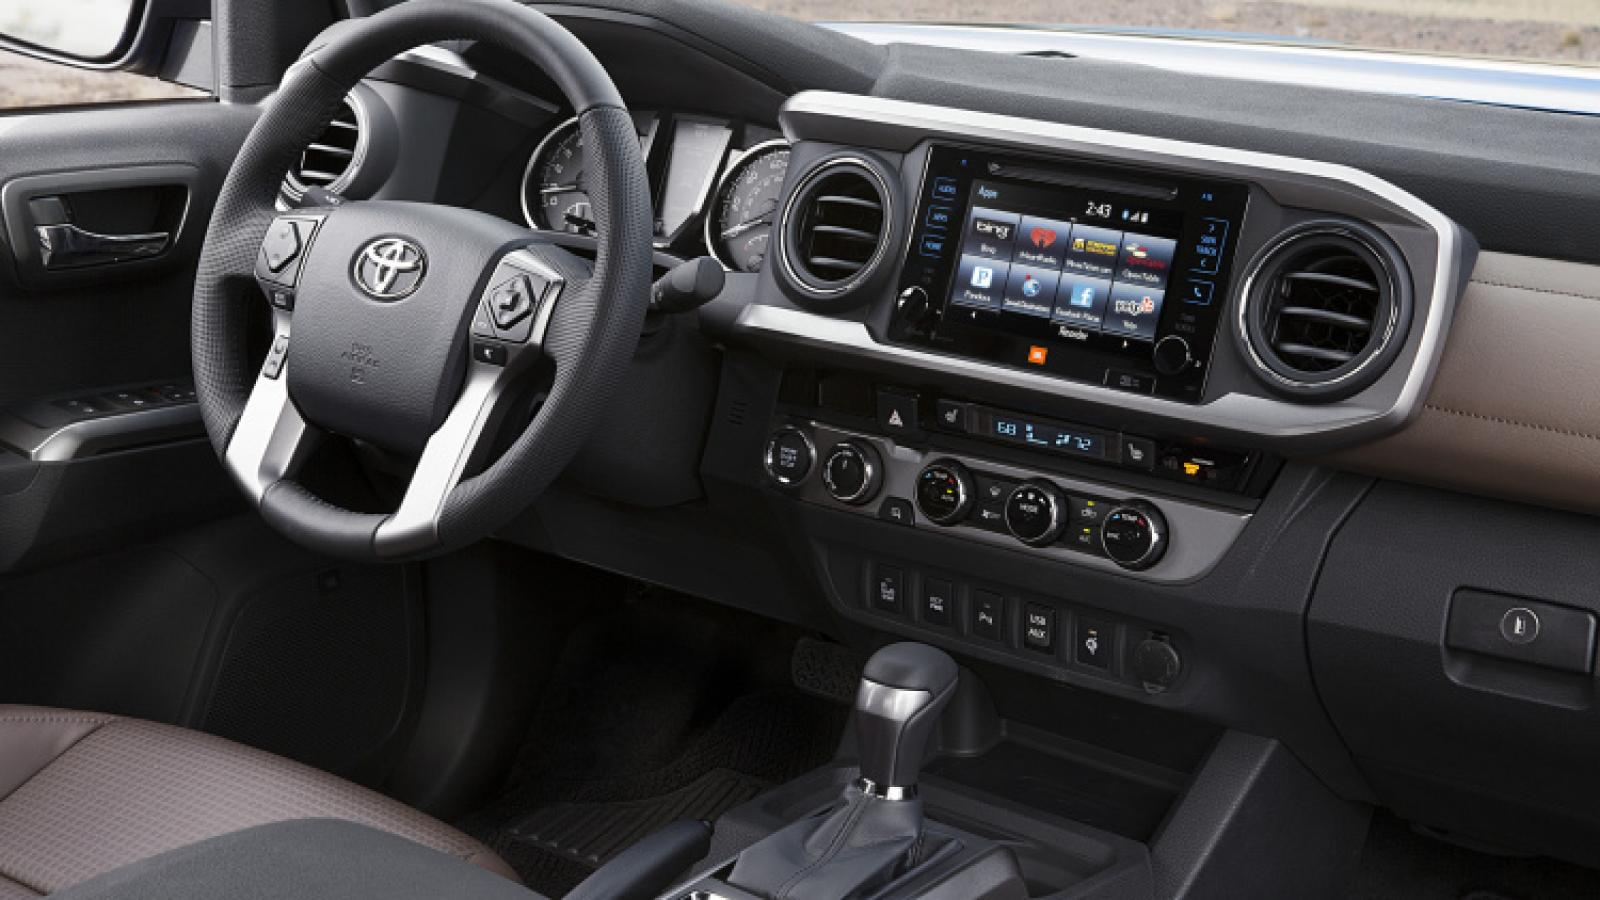 2016 Toyota Tacoma - Information and photos - ZombieDrive on toyota tacoma coil, toyota tacoma controls, toyota tundra wiring-diagram, toyota schematic diagrams, toyota tacoma relay location, toyota van wiring diagram, toyota tacoma solenoid, toyota brake wiring diagram, toyota tacoma fuel system, dodge neon wire diagram, toyota sequoia wiring diagram, toyota celica wiring-diagram, toyota liteace wiring diagram, toyota tacoma belt routing, toyota tacoma switch, toyota truck wiring diagram, toyota engine wiring diagram, toyota innova wiring diagram, toyota tacoma recovery points, toyota tacoma ignition,